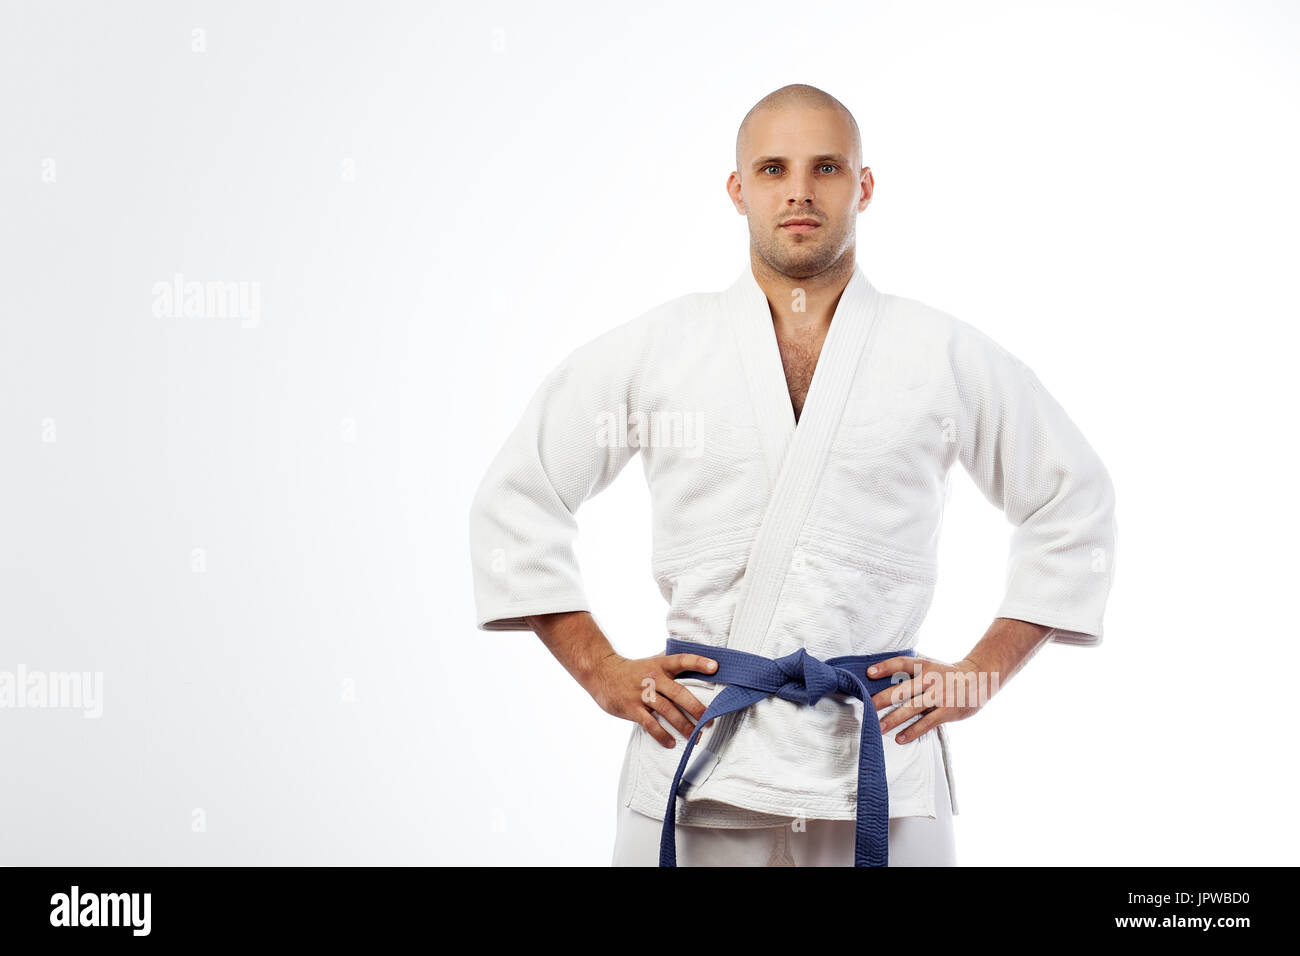 A young strong man in a white kimono for sambo, jiu jitsu and other martial